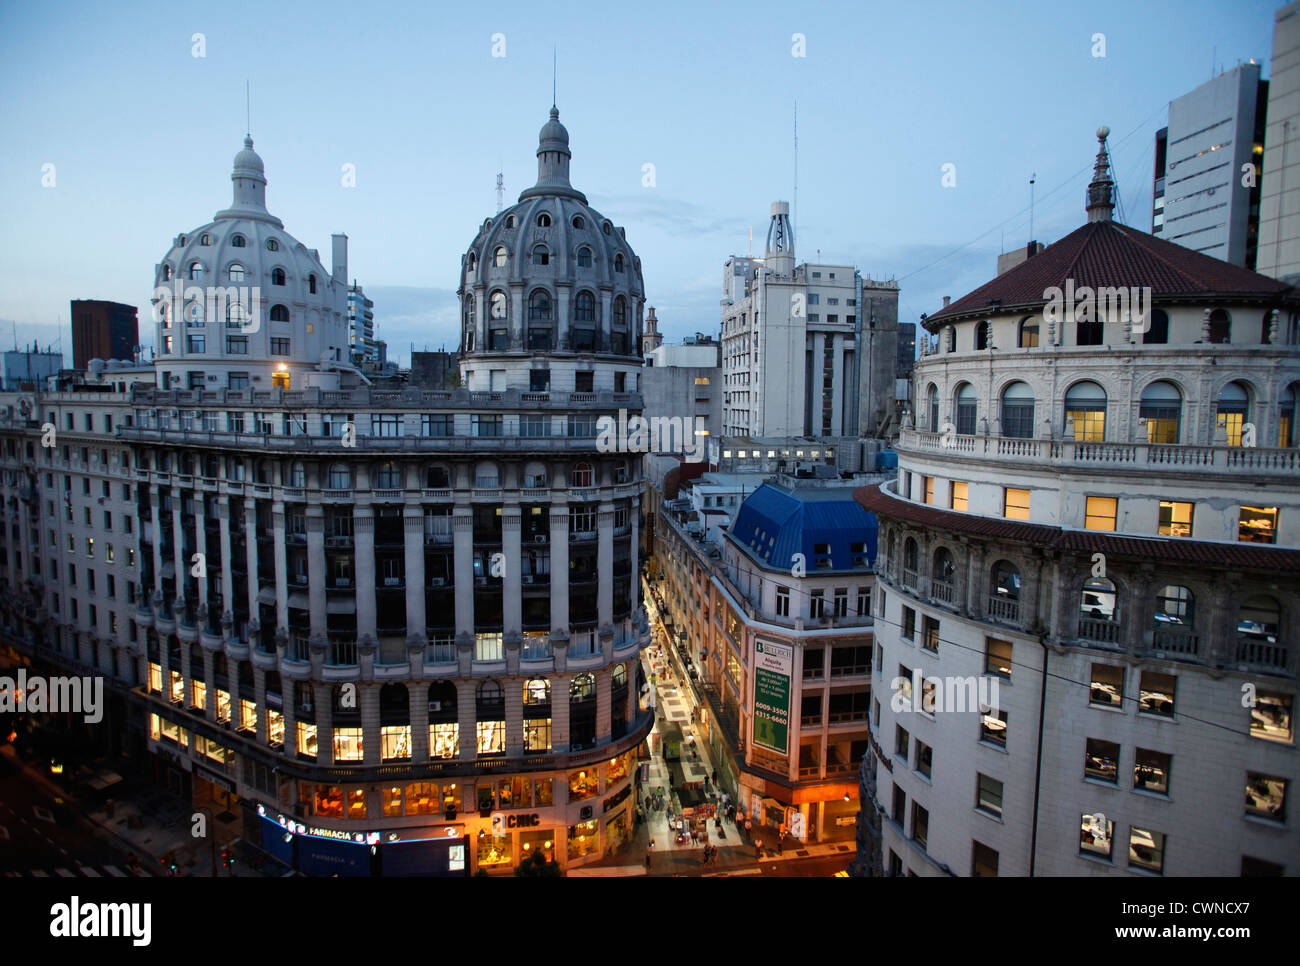 View over Calle Florida and 19th century buildings, Buenos Aires, Argentina. - Stock Image